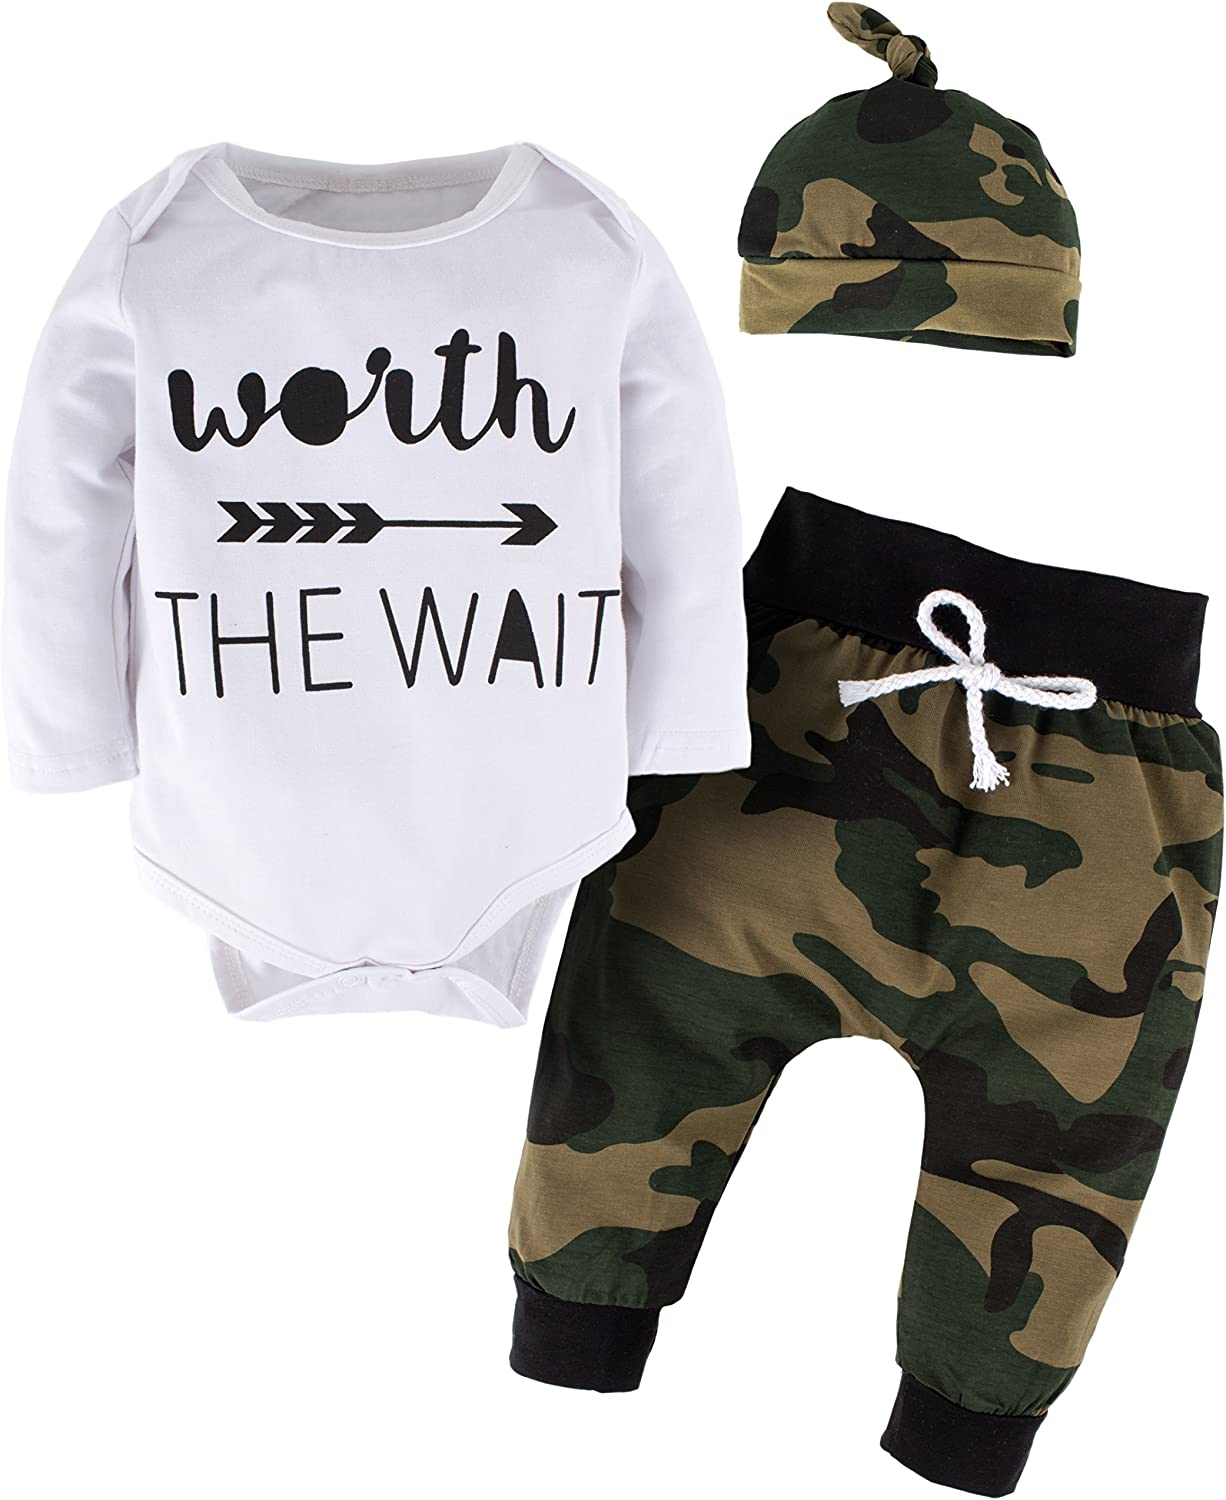 Vintage Army Dad Military Baby Long Sleeve Bodysuit Cotton Romper